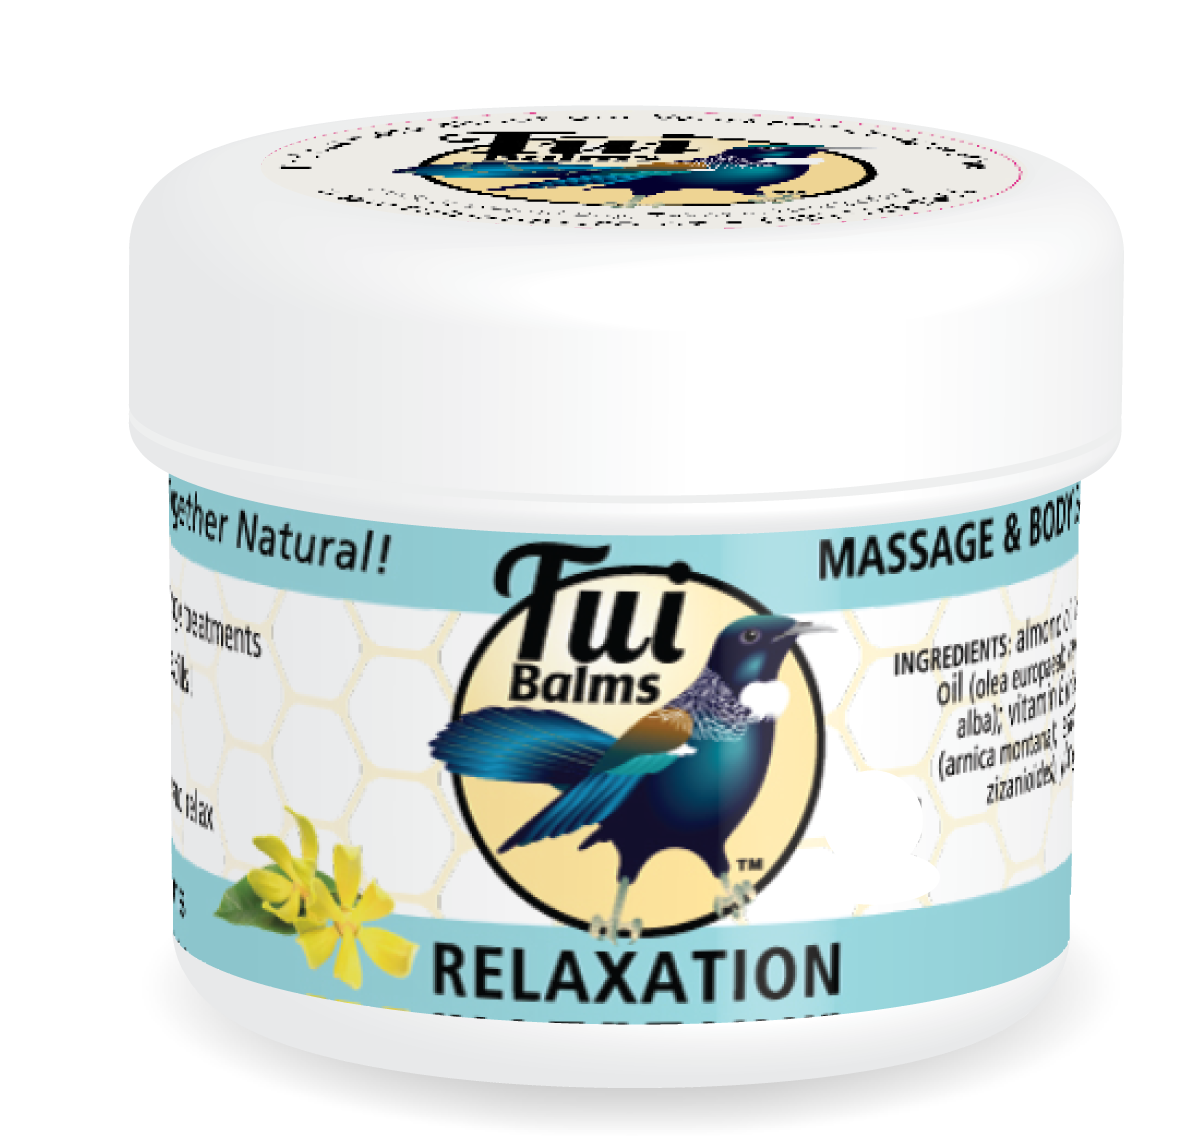 Massage & Body Balm RELAXATION